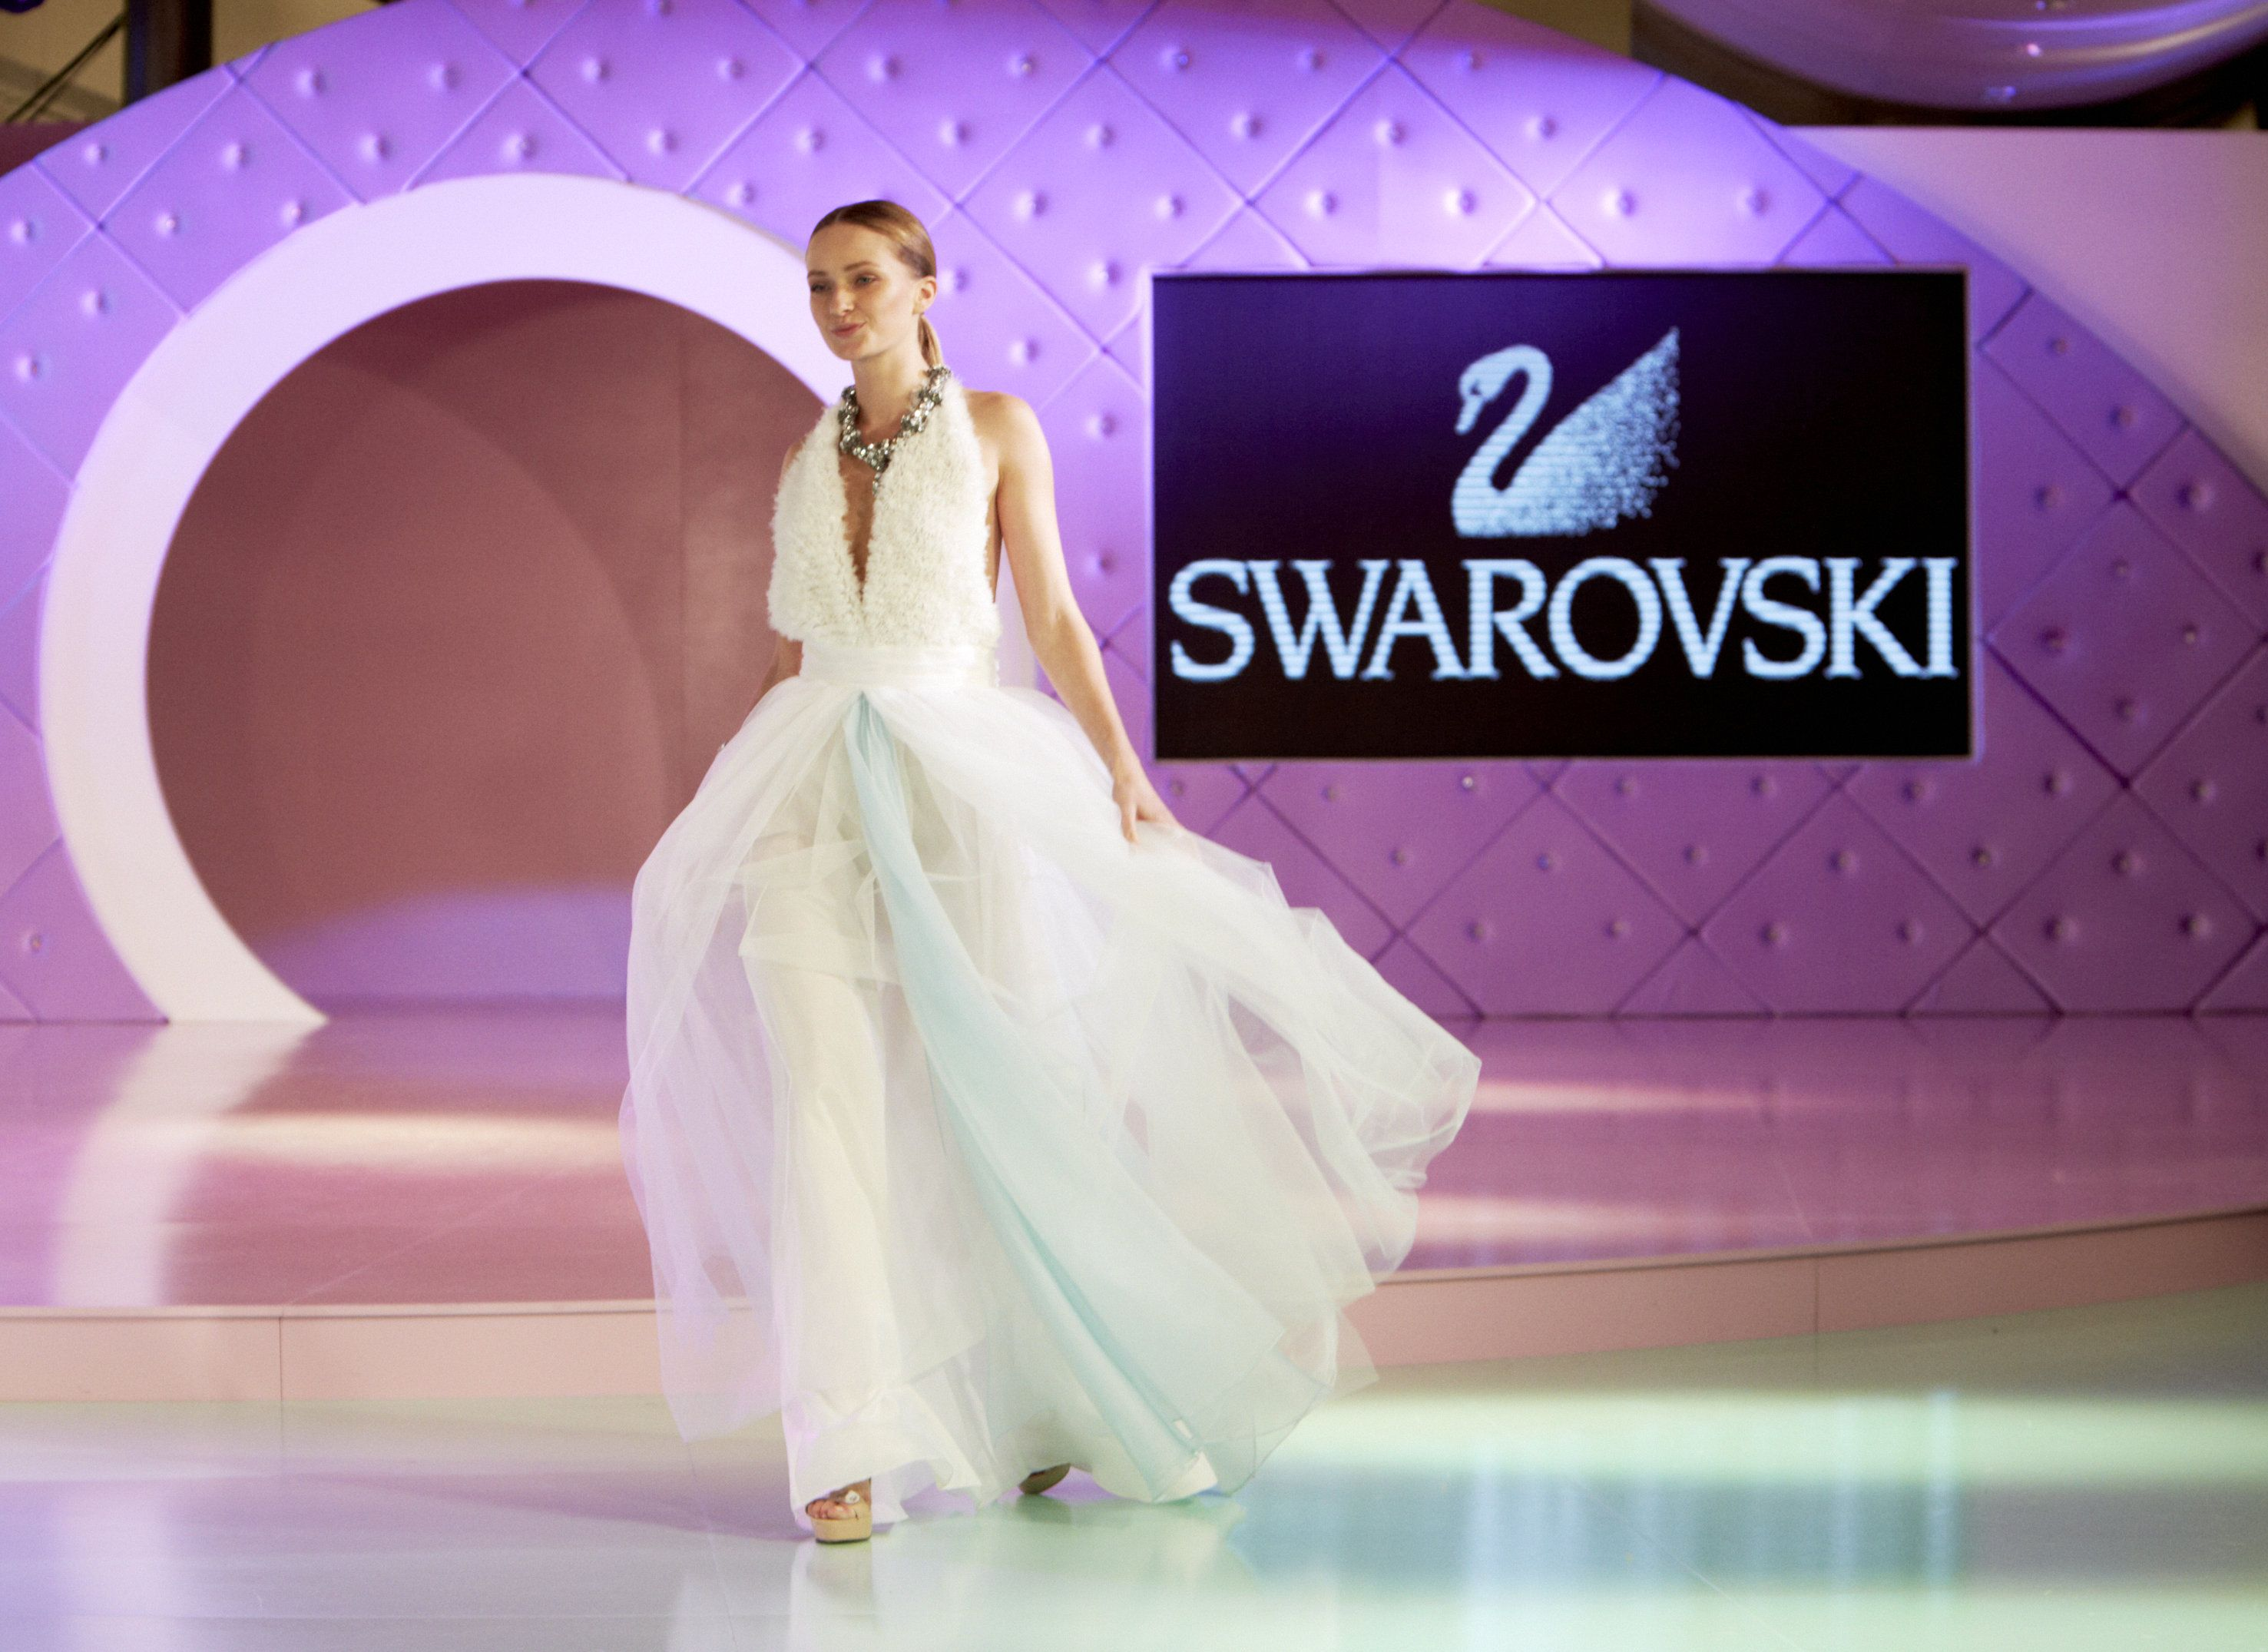 Tulle and Jewels with Cleo and Swarovski Rule in the Kingdom of Jewels @ 30 Days of Fashion and Beauty